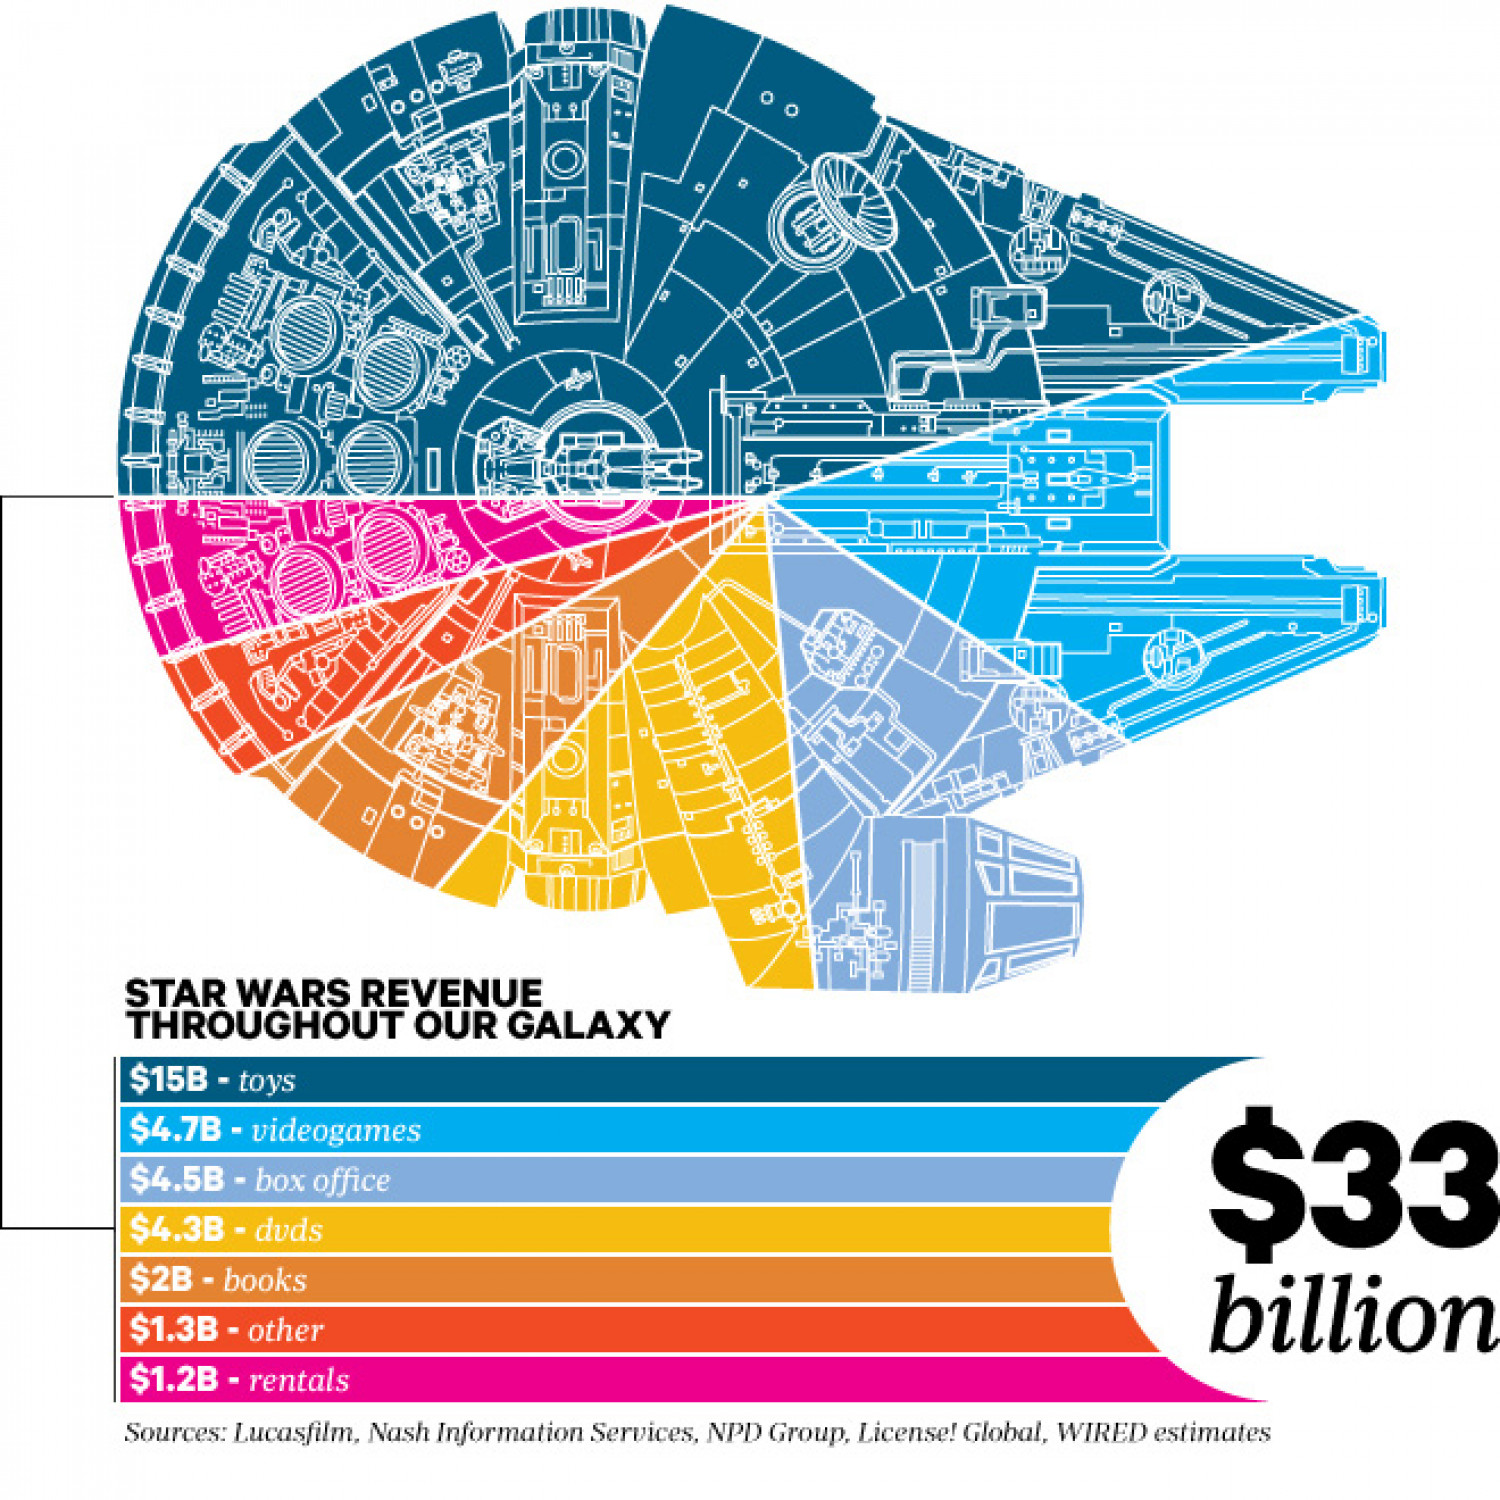 Star Wars Revenue Throughout Our Galaxy Infographic